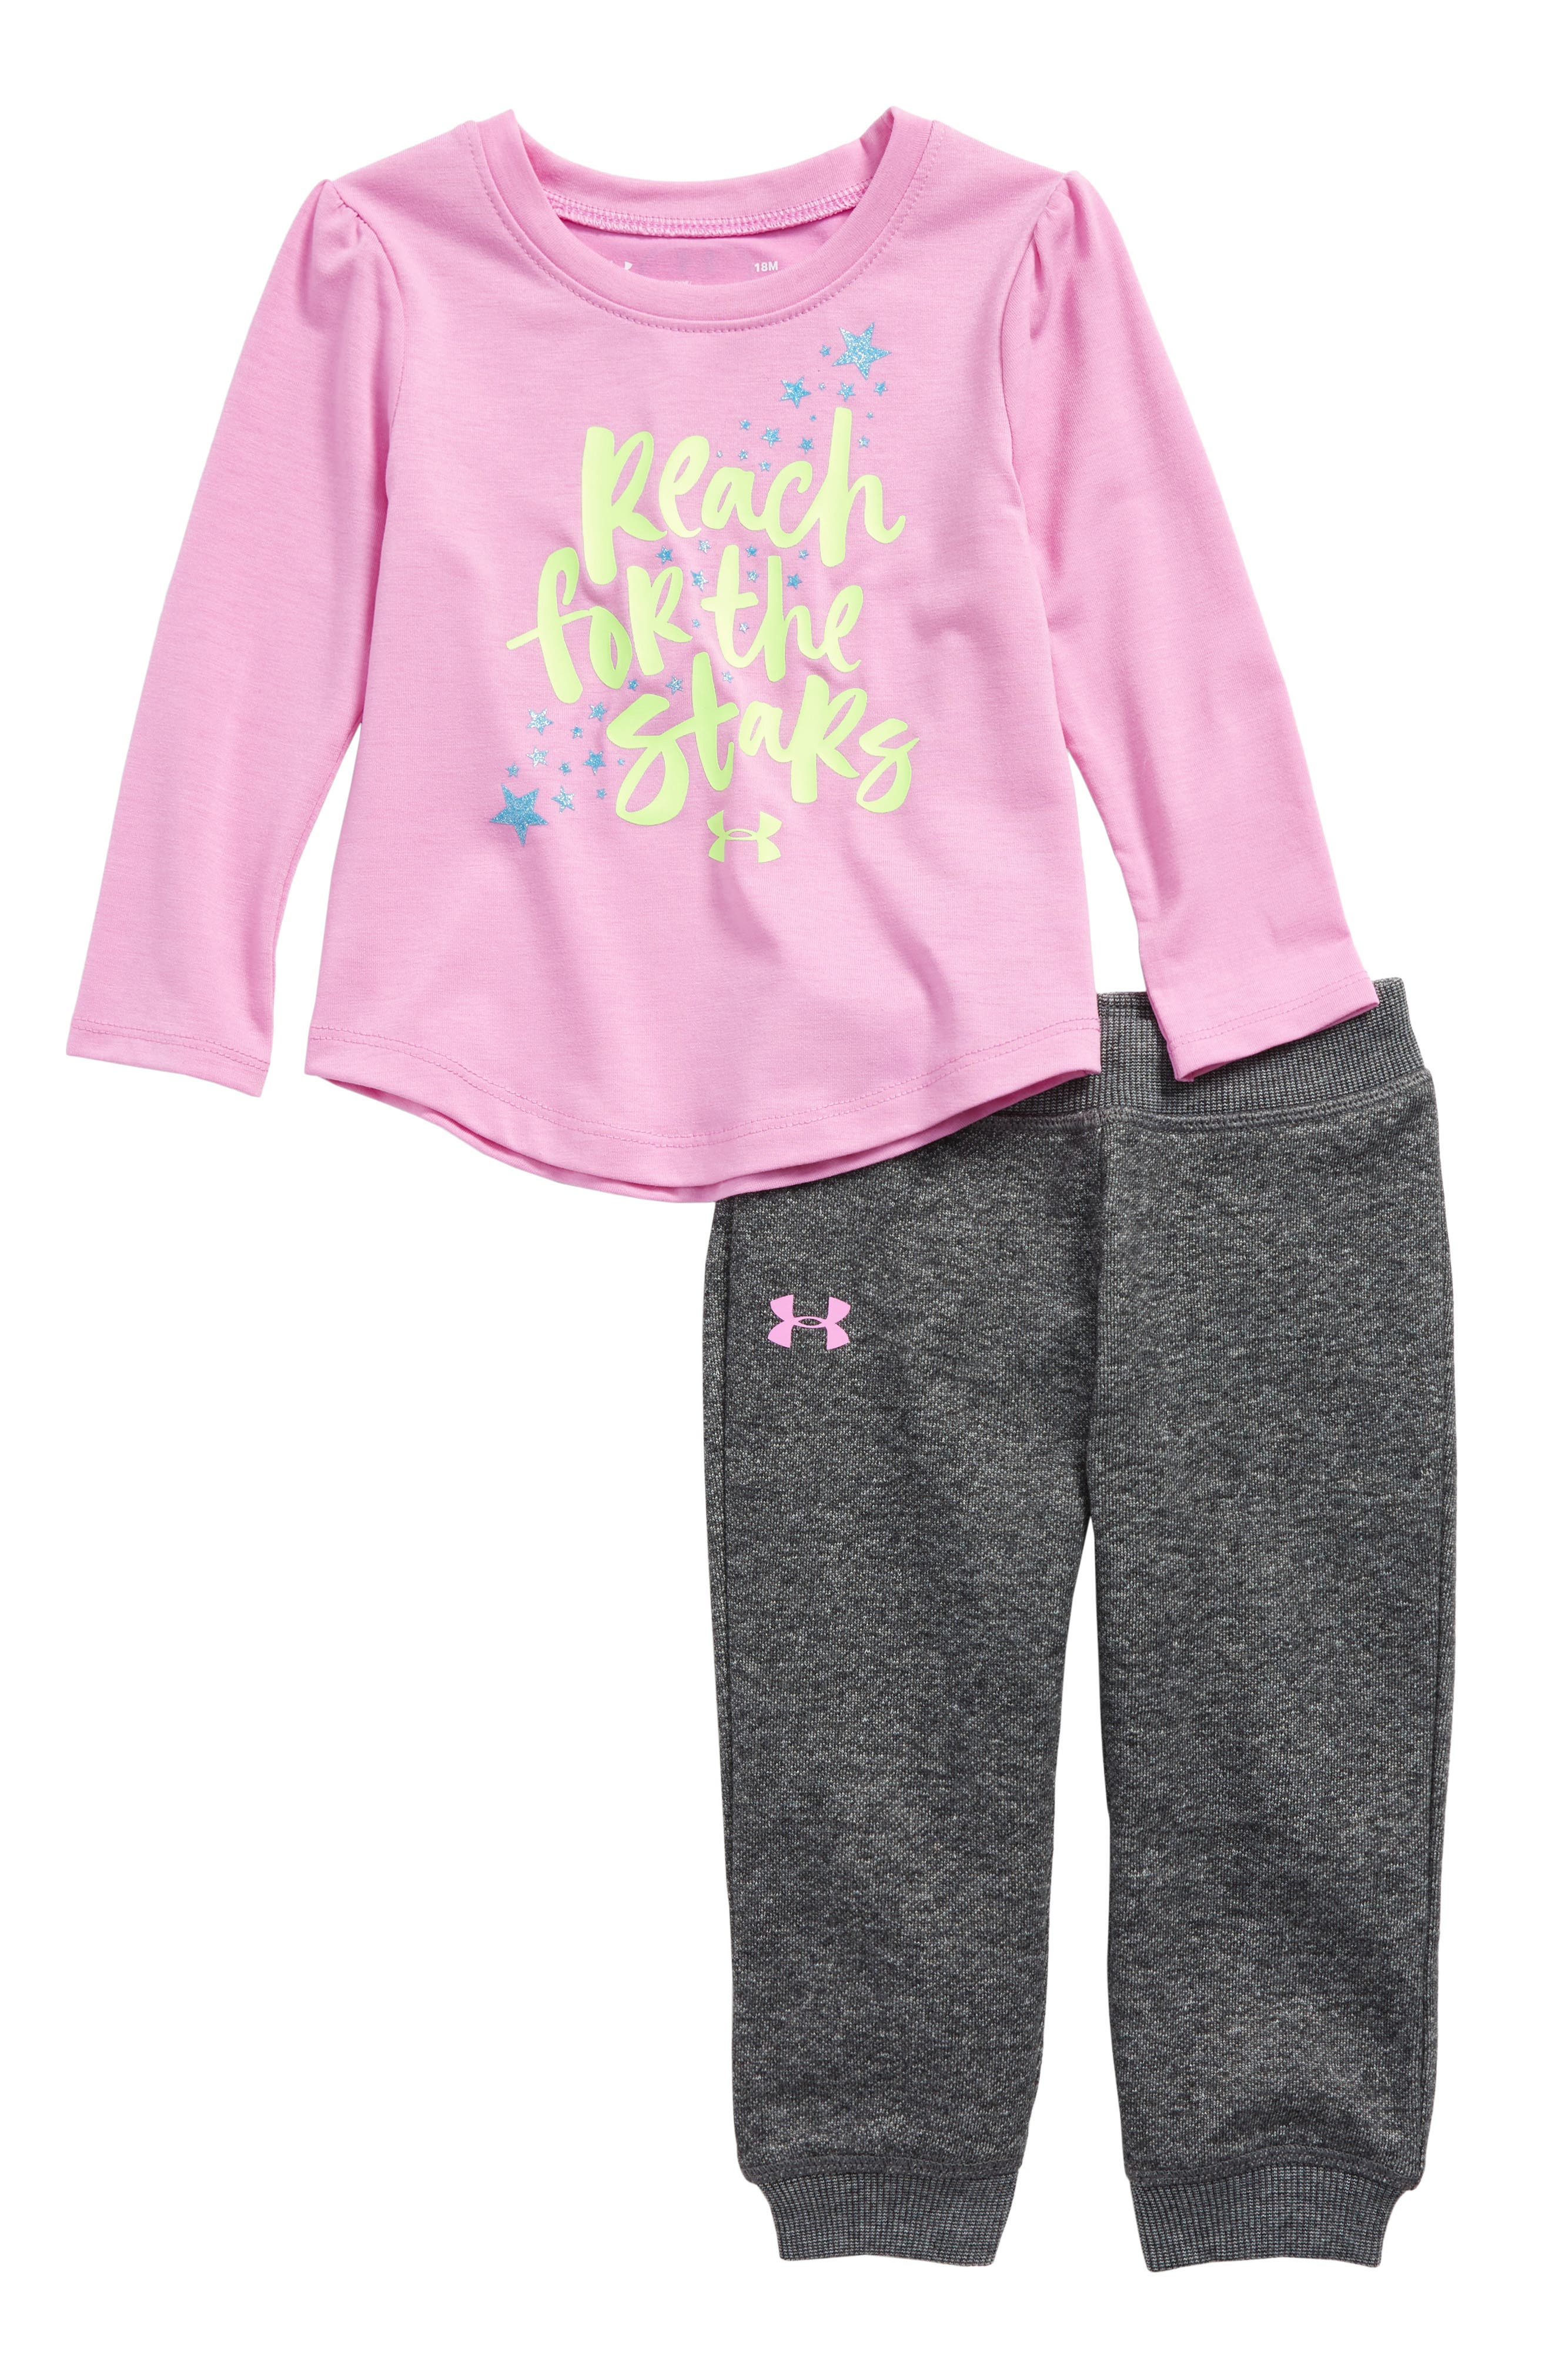 Under Armour Reach For The Stars Tee & Sweatpants Set (Baby Girls)